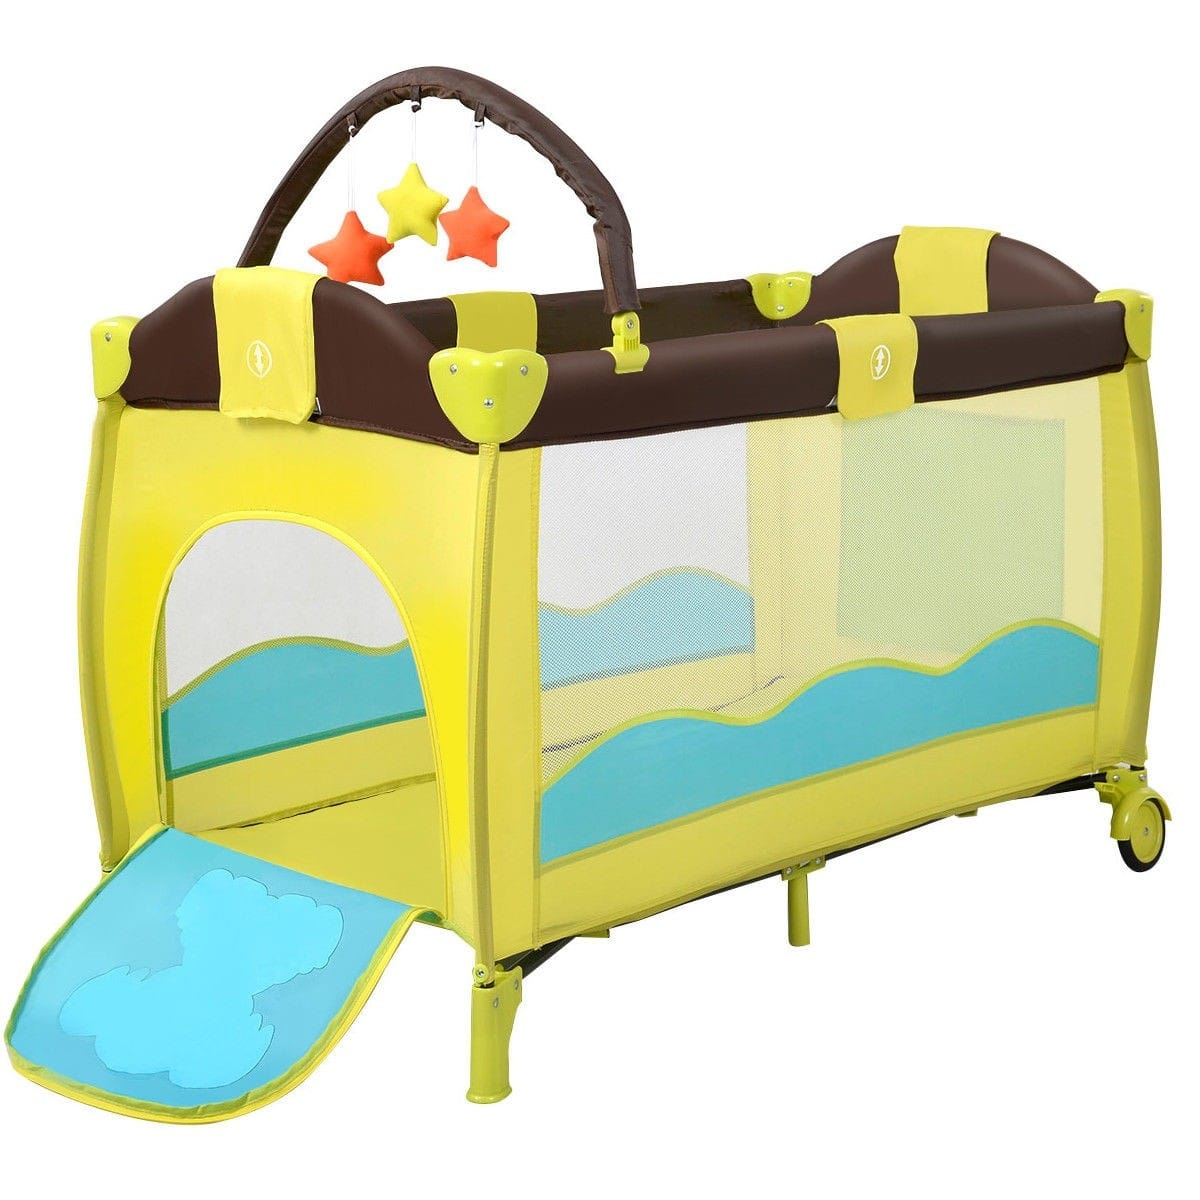 Costway Foldable Baby Crib Baby Bed Playpen Play Yard $53.95 + Free Shipping